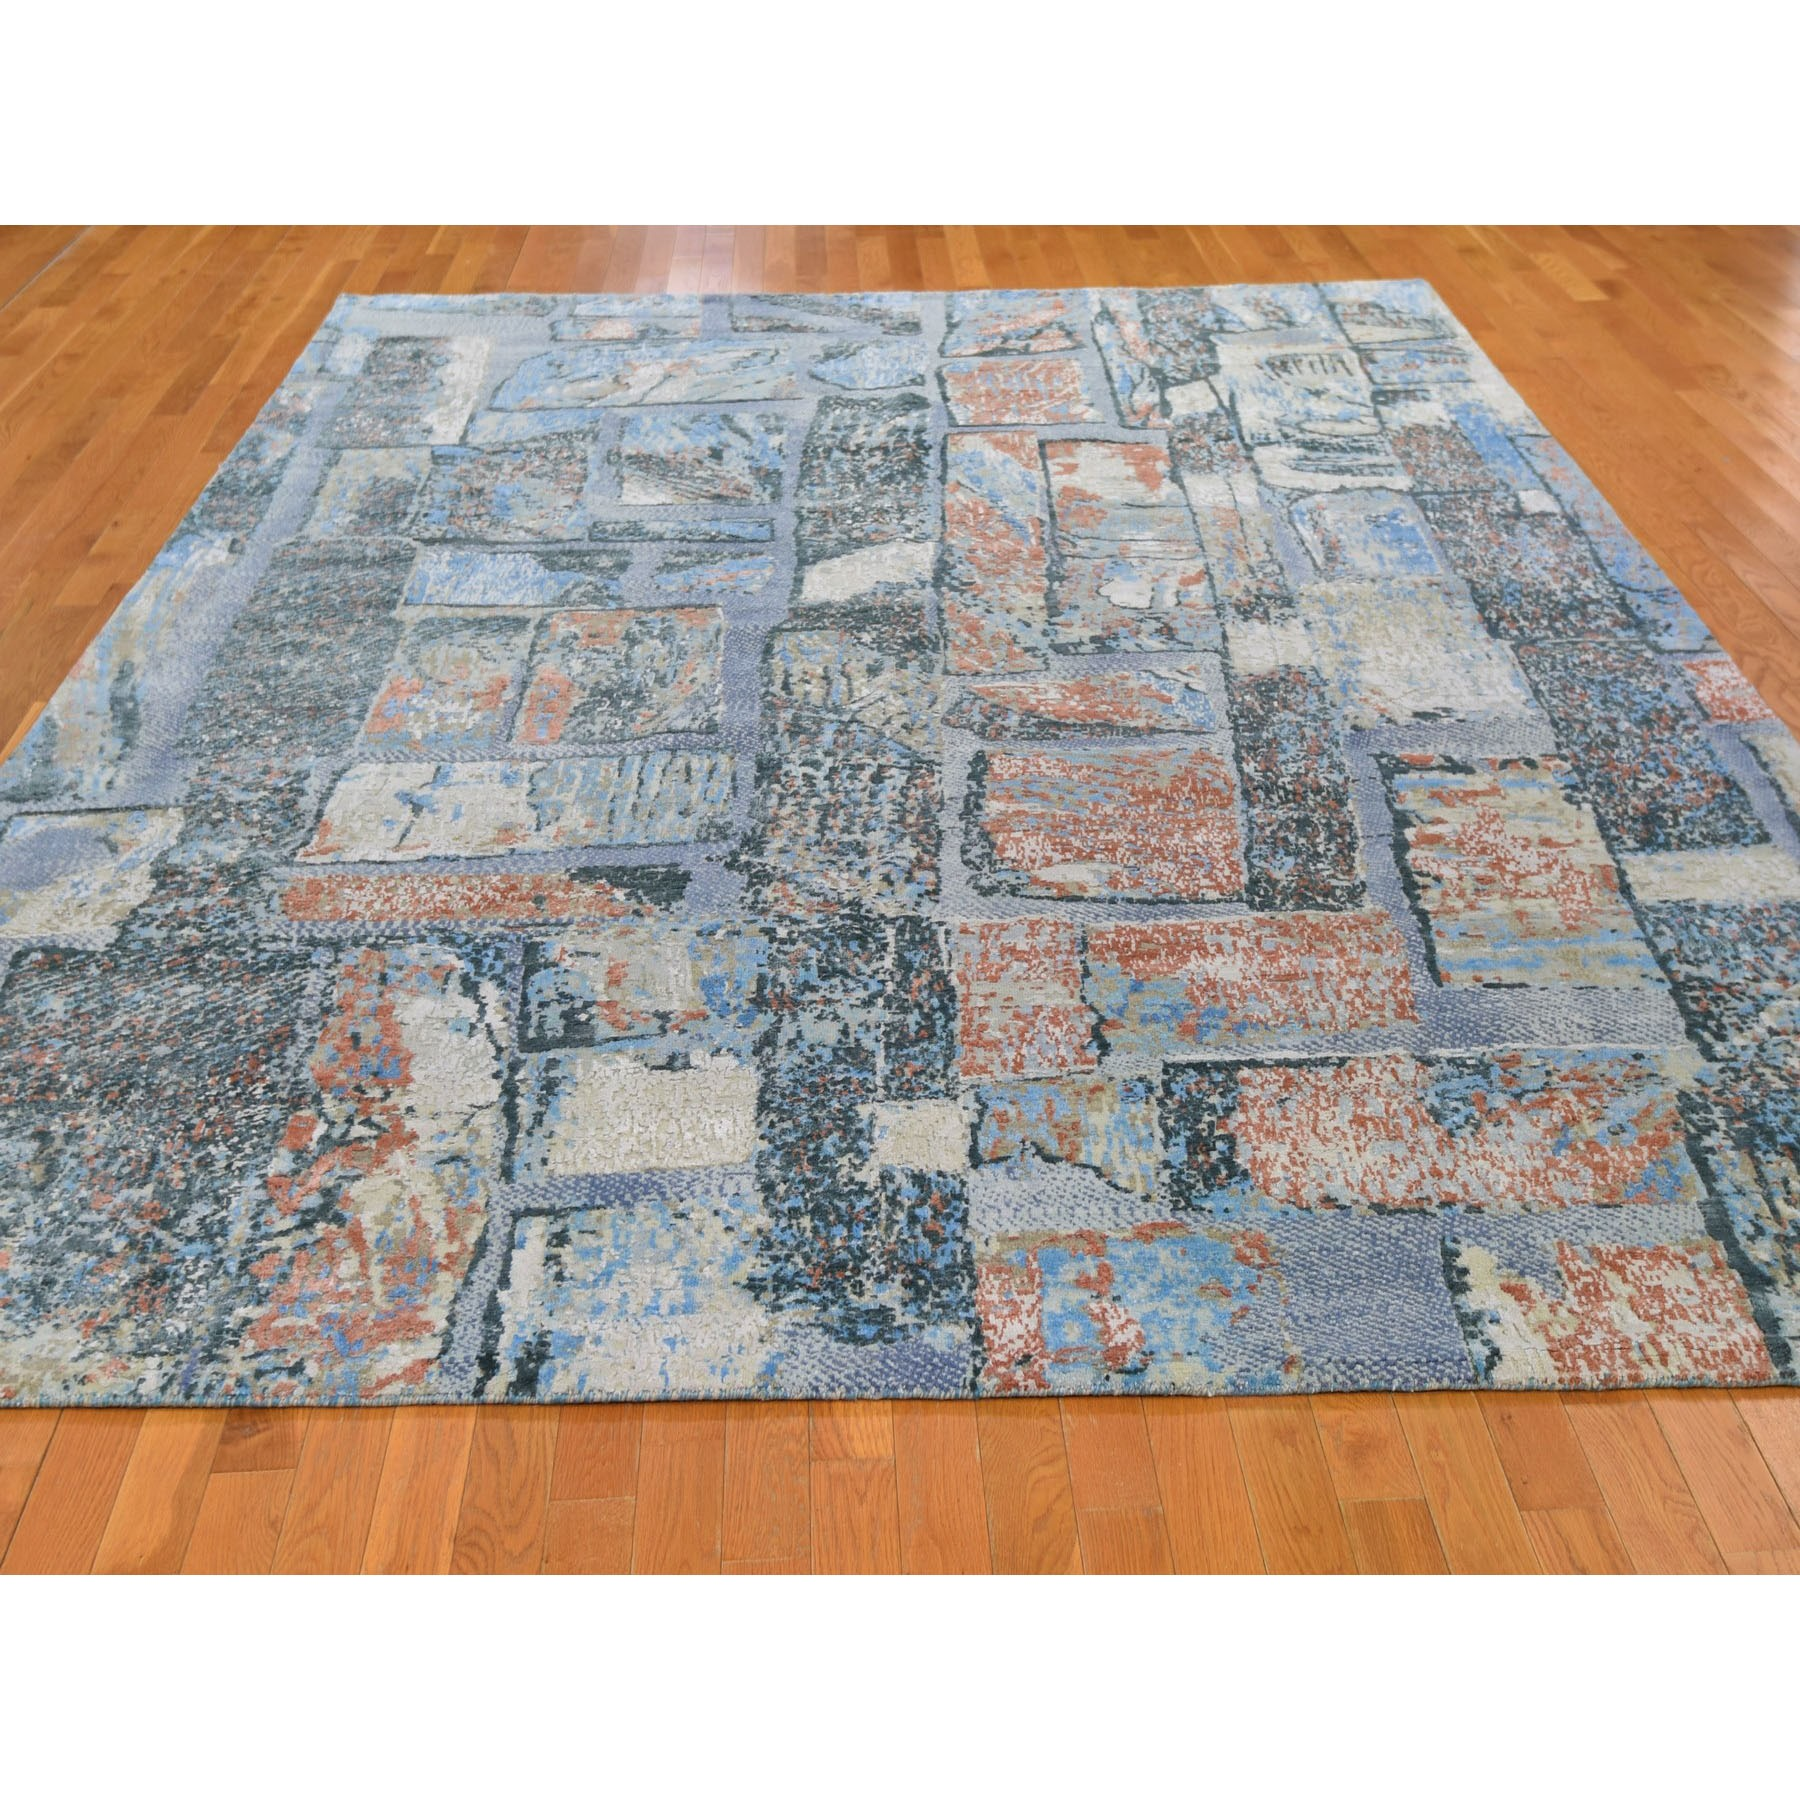 "9'x12'2"" Brick Design Modern Thick and Plush Hand Knotted Oriental Rug"